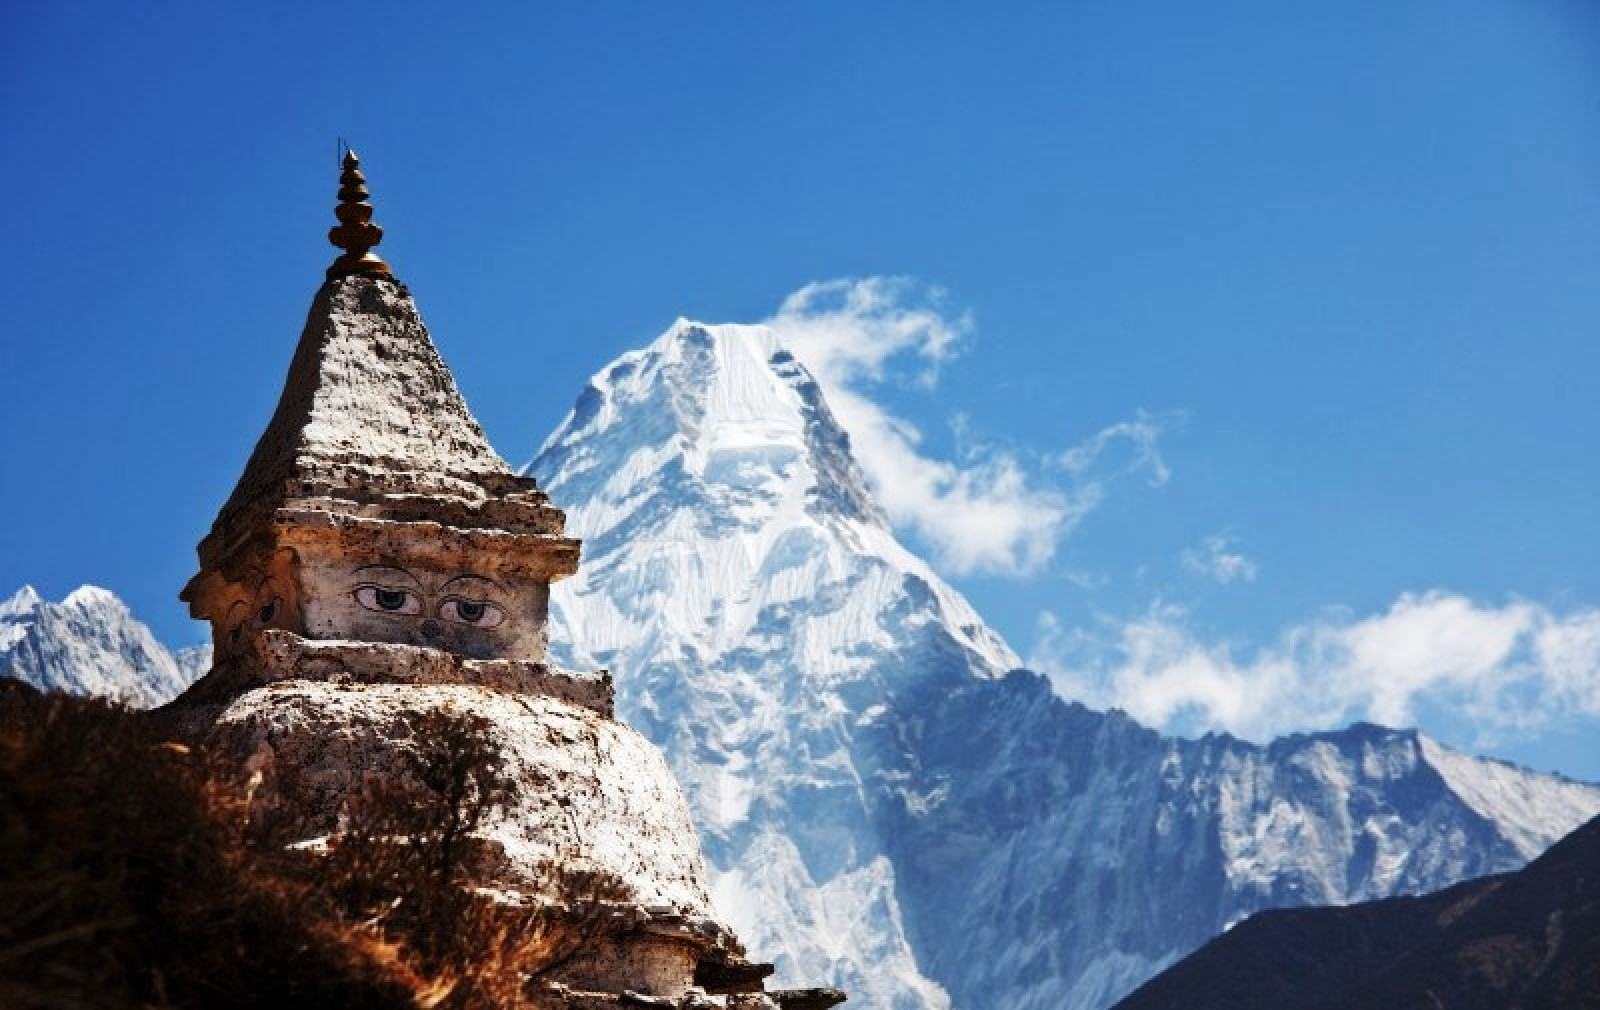 Ornaments-in-the-Himalayas